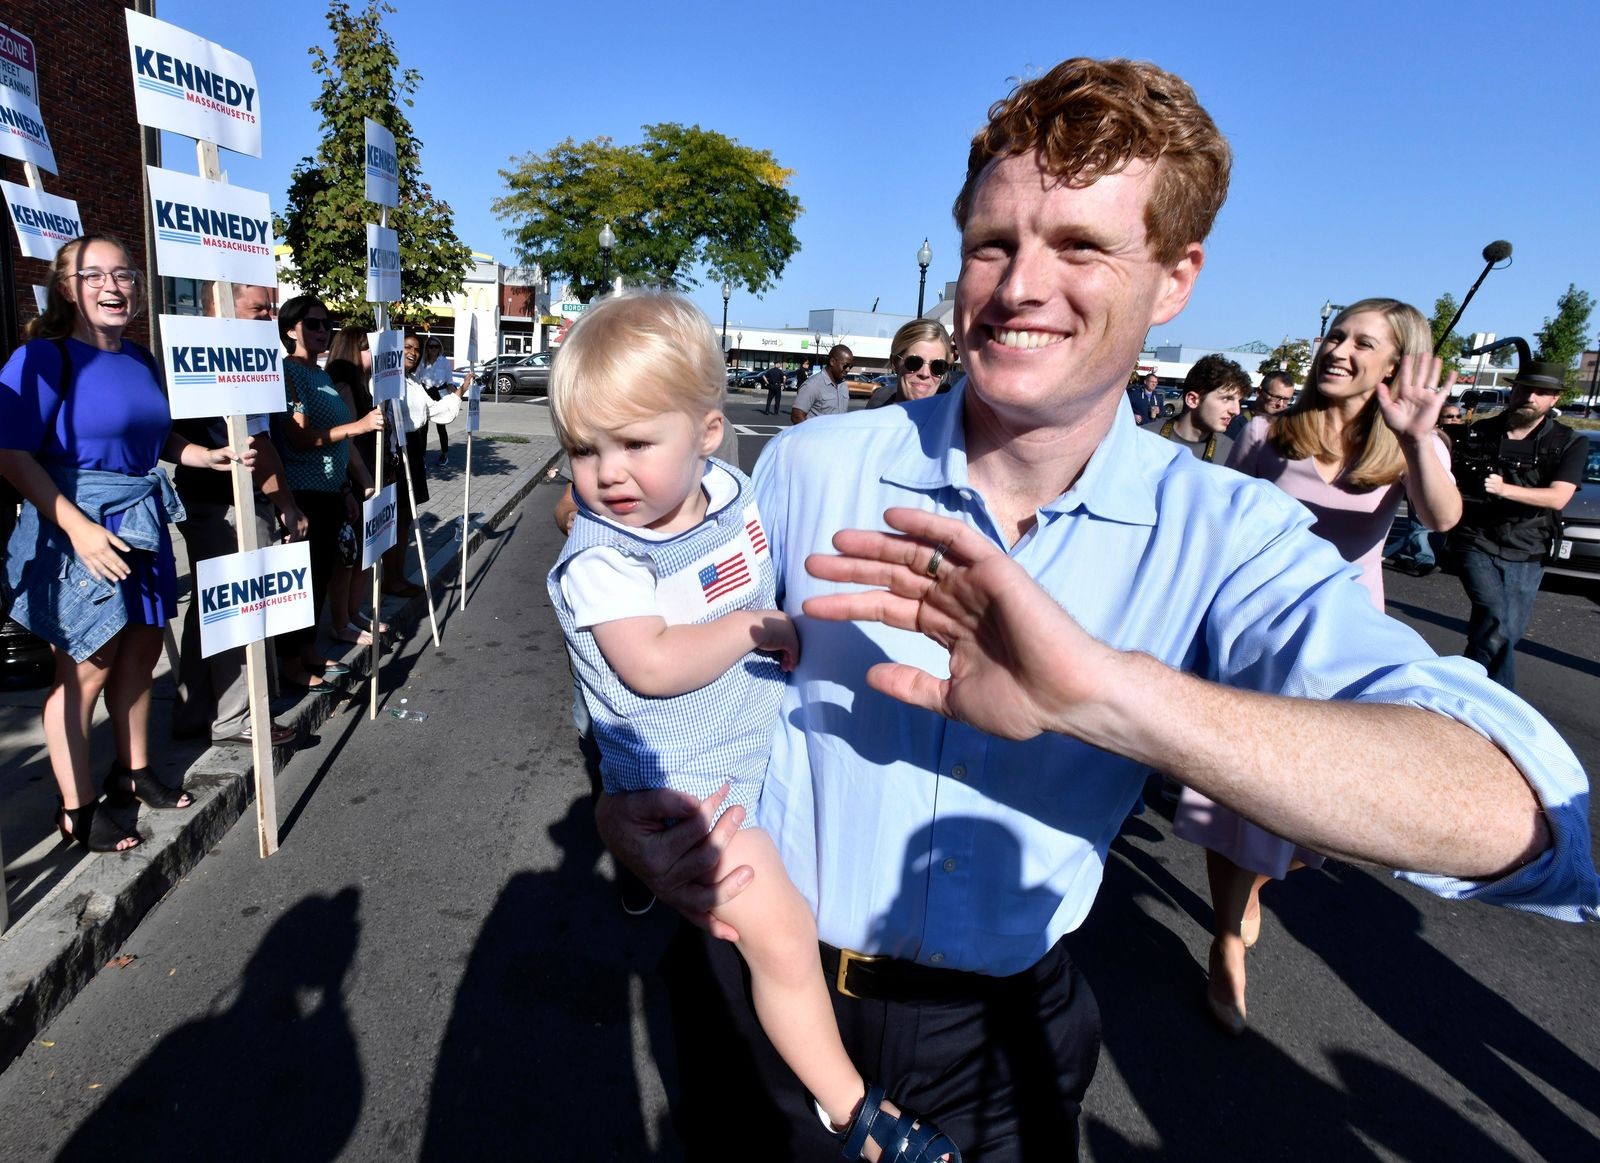 Democratic U.S. Rep. Joseph Kennedy III, D-Mass., waves to supporters as he arrives with family members, from left, his son James Kennedy, 1, and wife Lauren Kennedy, in East Boston to announce his candidacy for the Senate on Saturday, Sept. 21, 2019, in Boston. Kennedy will challenge incumbent Sen. Ed Markey in the Democratic primary. (AP Photo/Josh Reynolds)